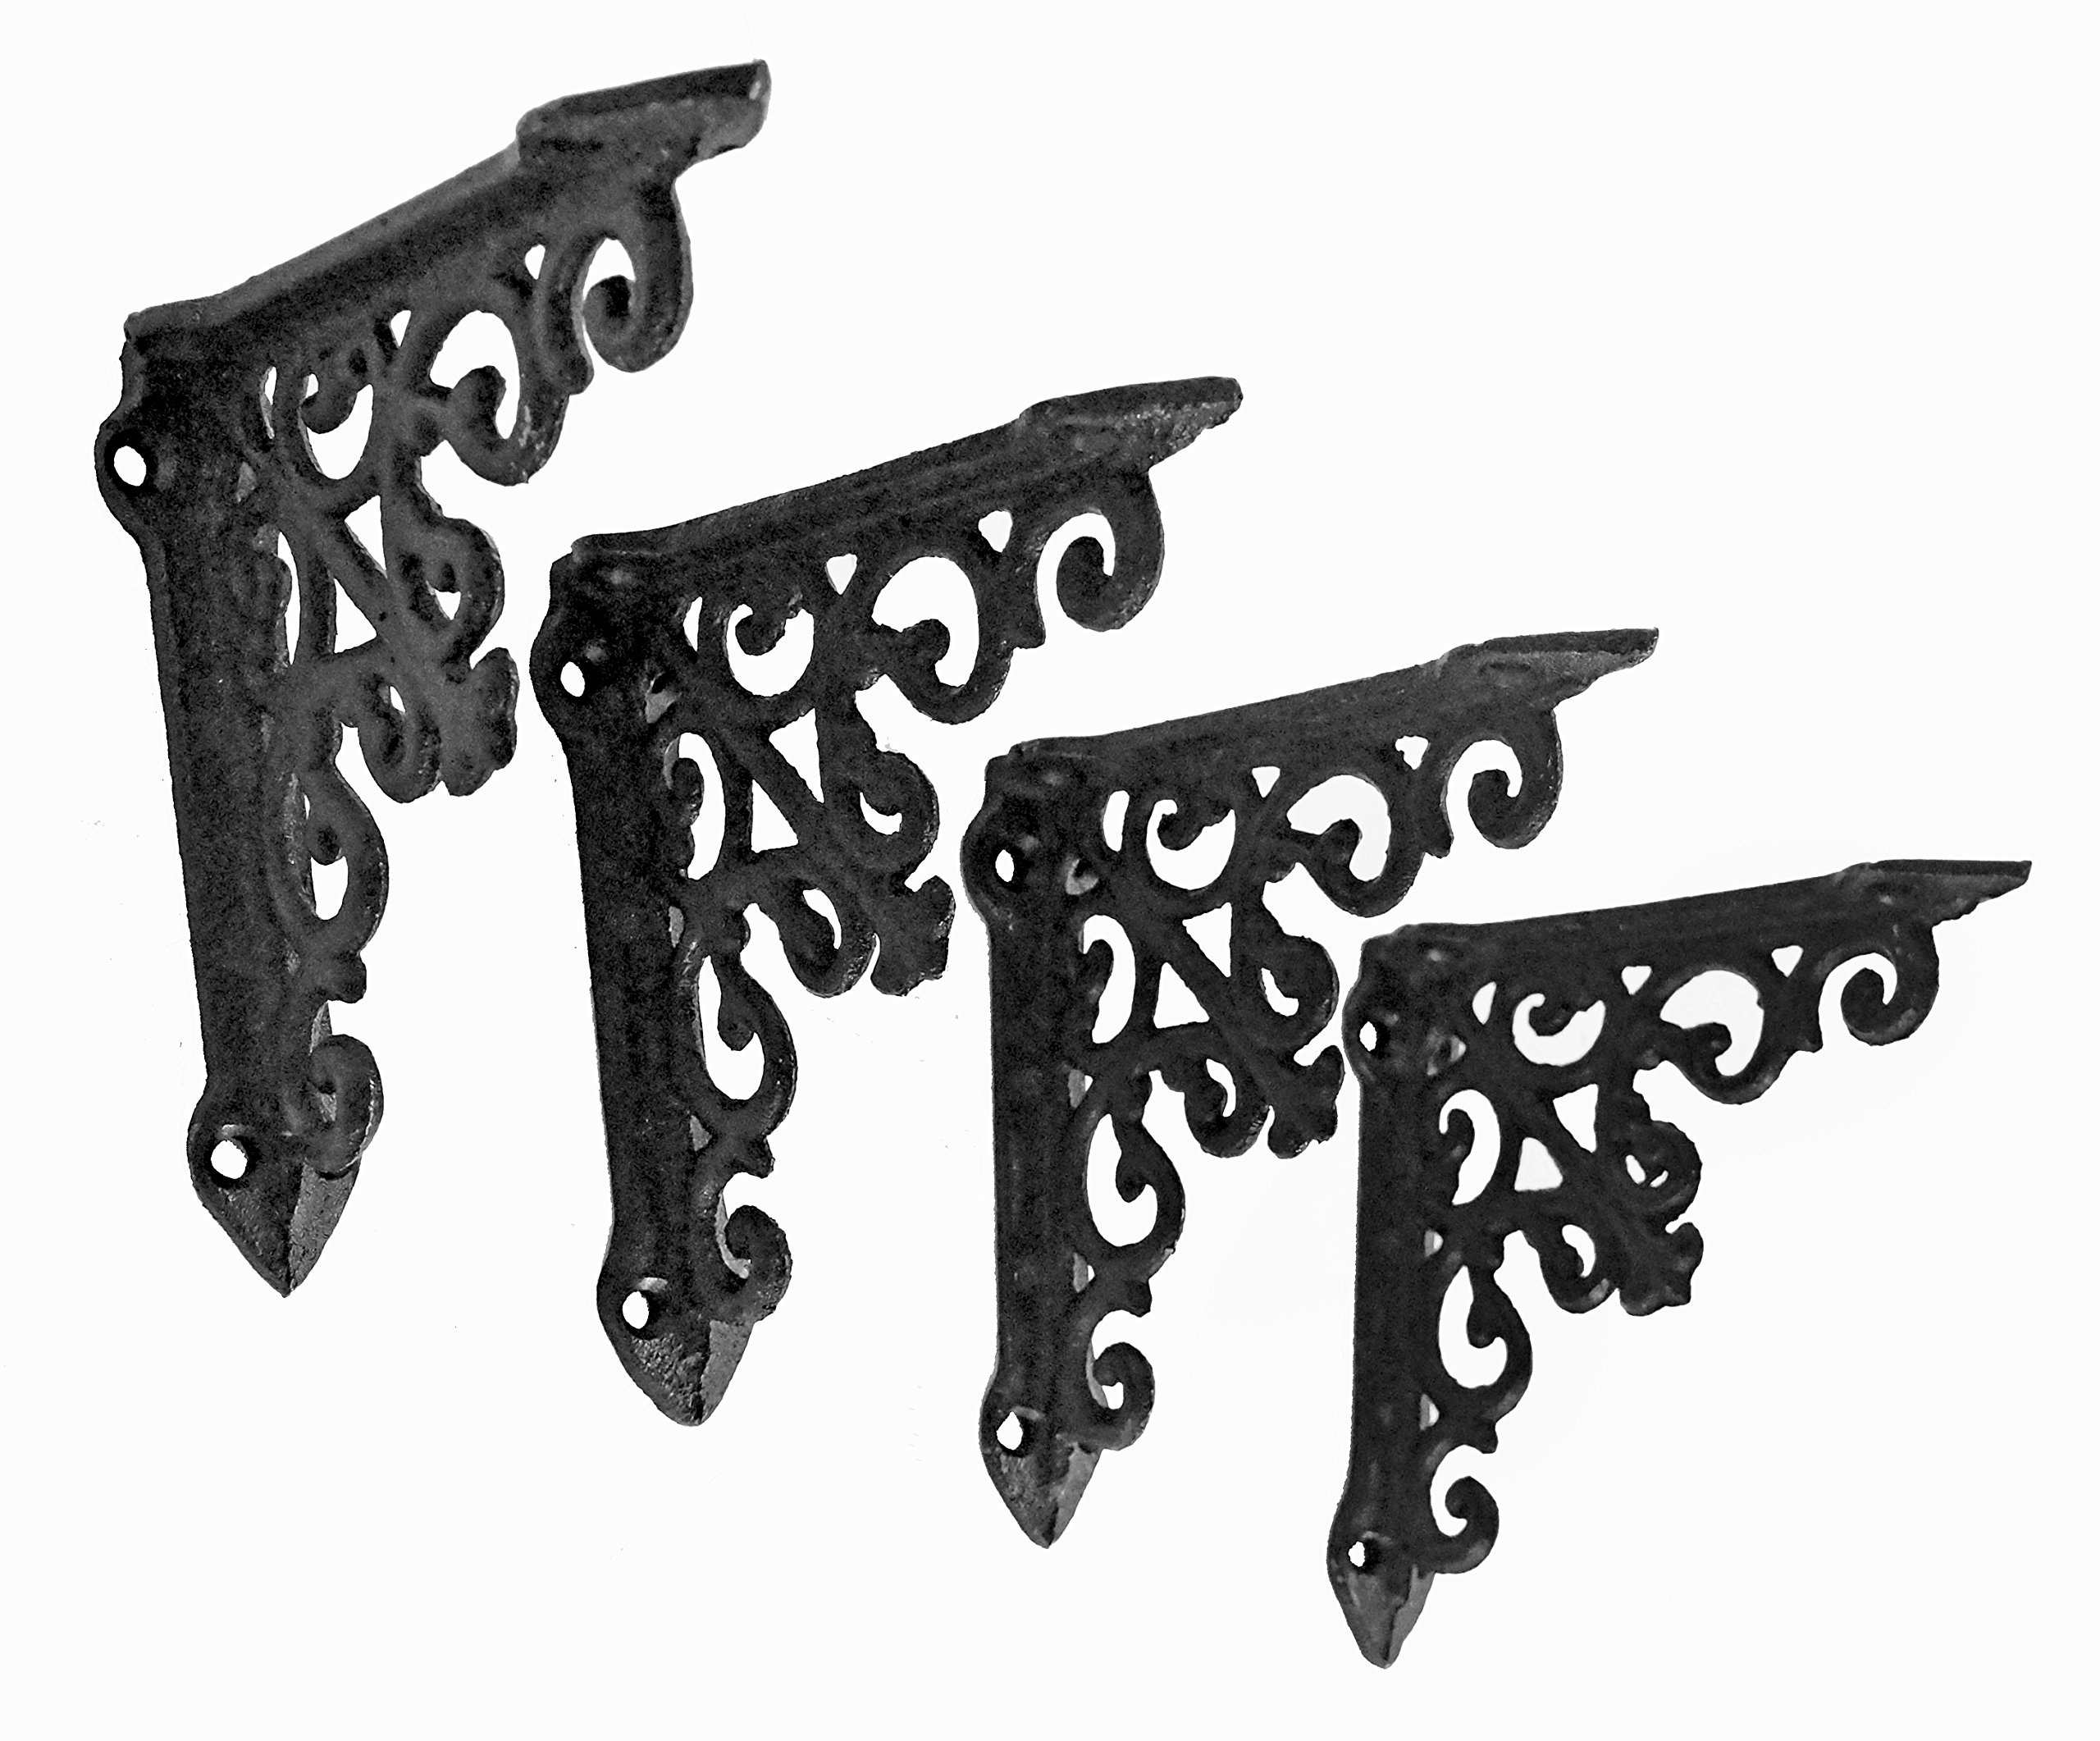 NACH js-90-061 Victorian Shelf Bracket (Pack of 4), Small, Black (5x1x5 inches)